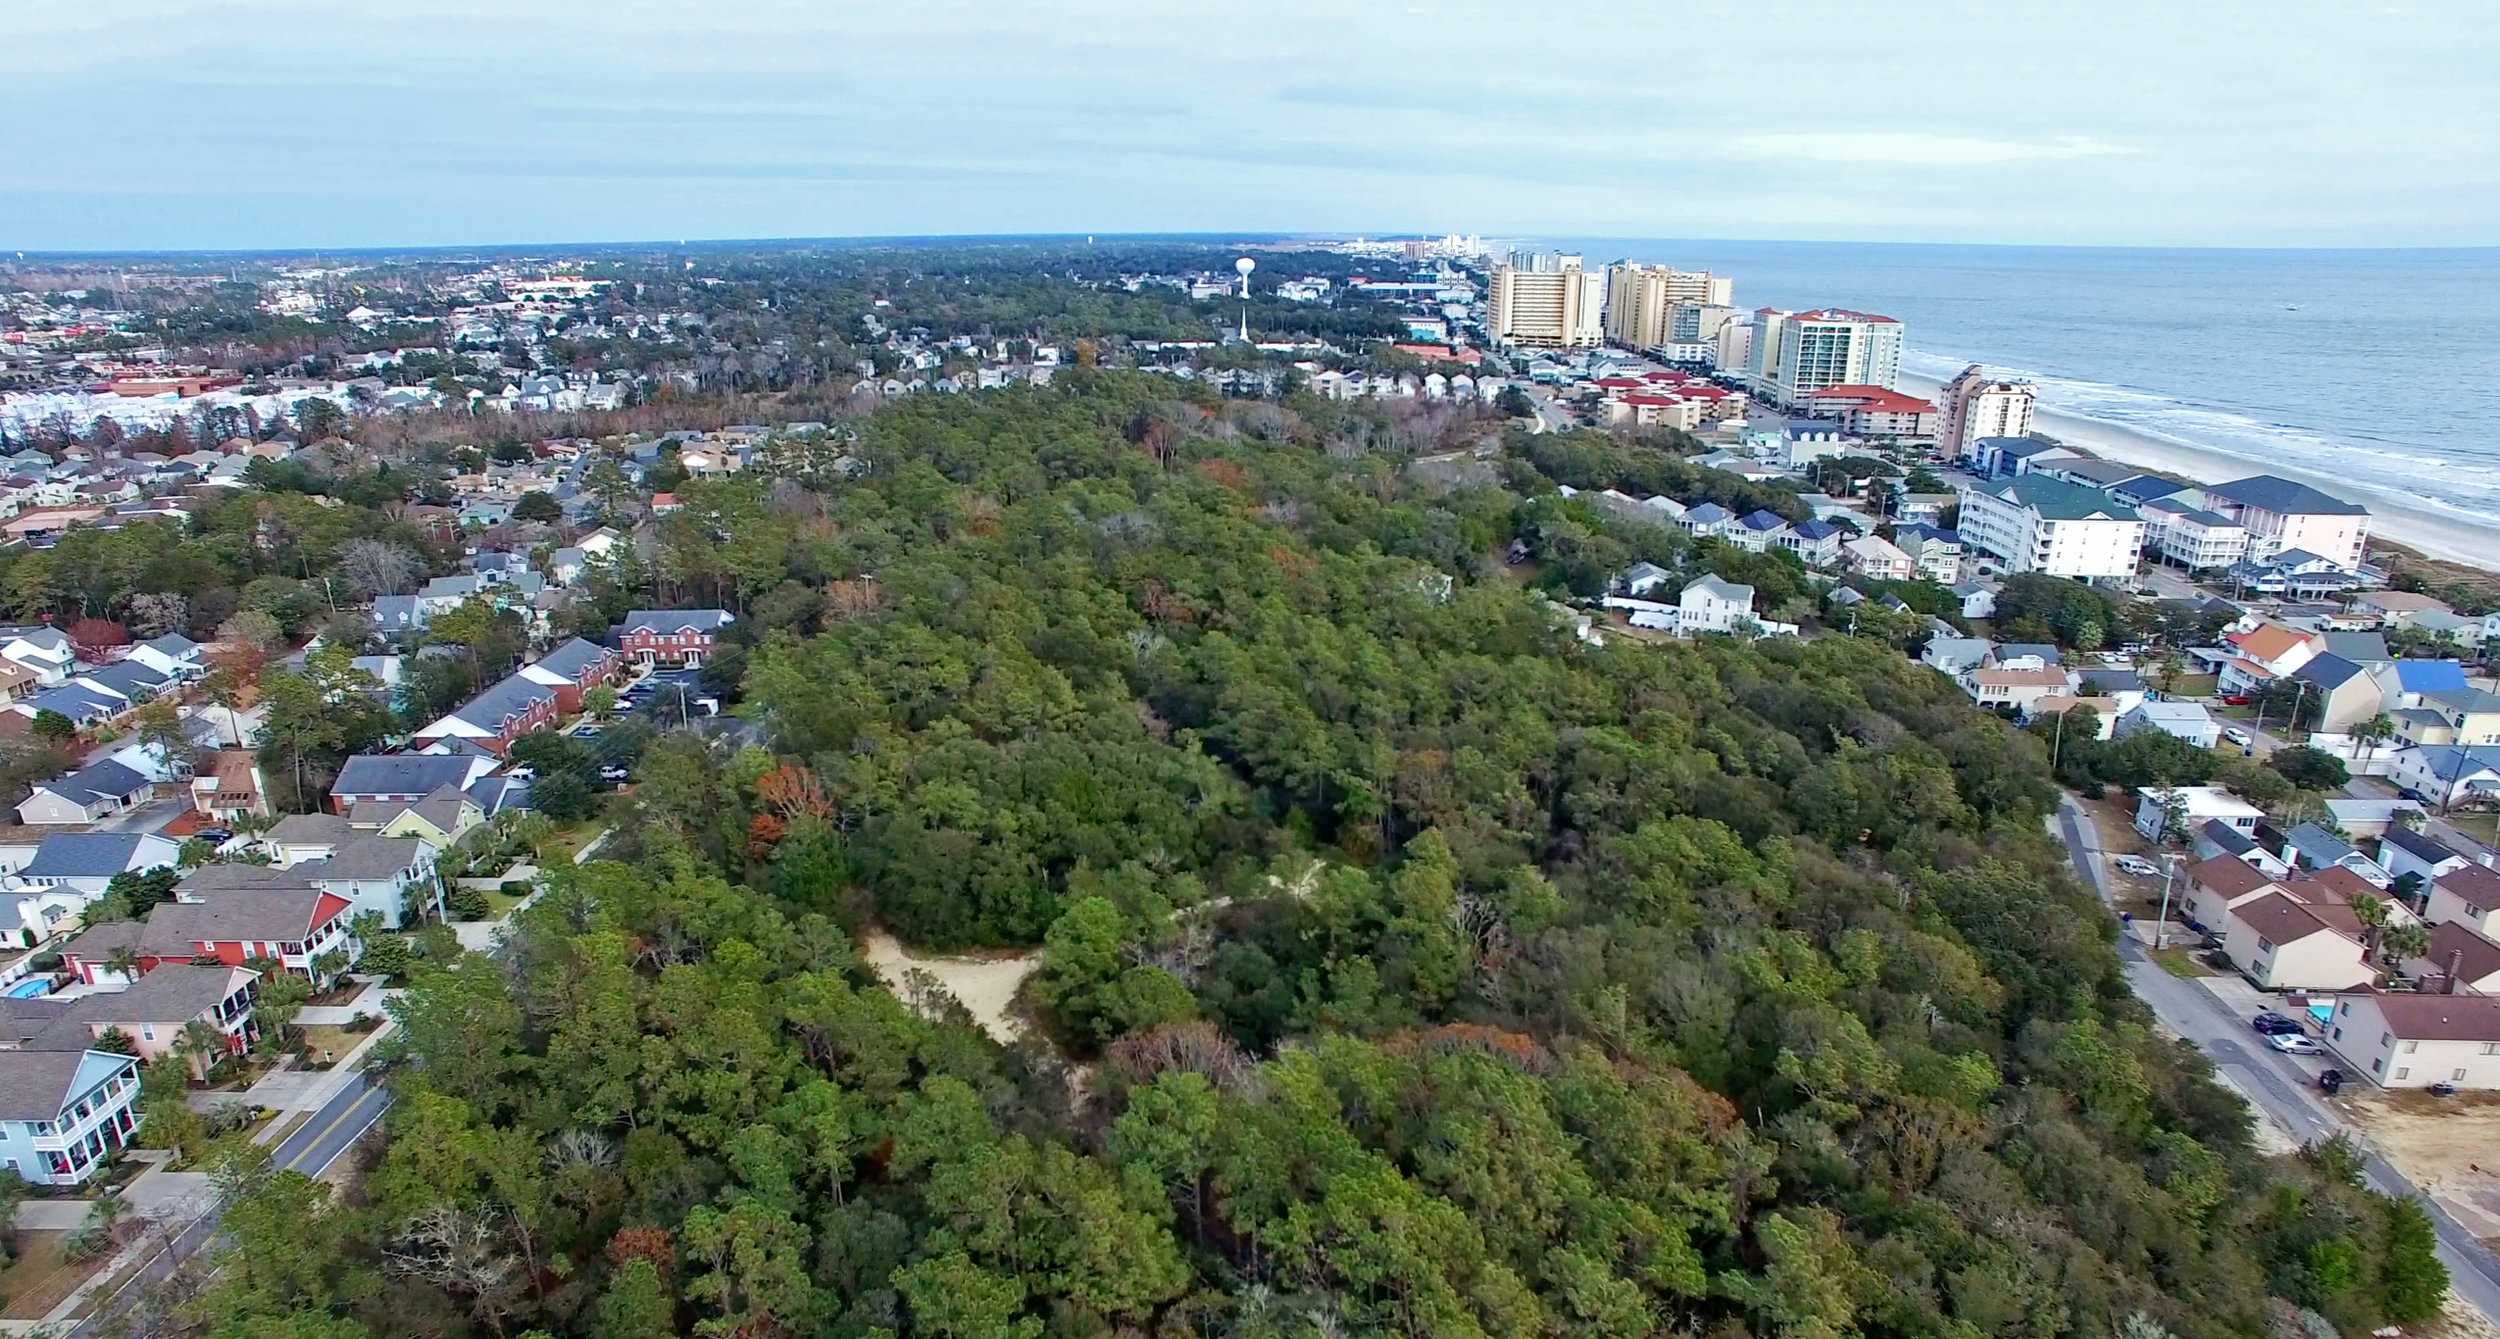 An aerial view of the Ingram Dunes, located in the heart of North Myrtle Beach off of Hillside Drive between 9th Avenue South and 10th Avenue South.